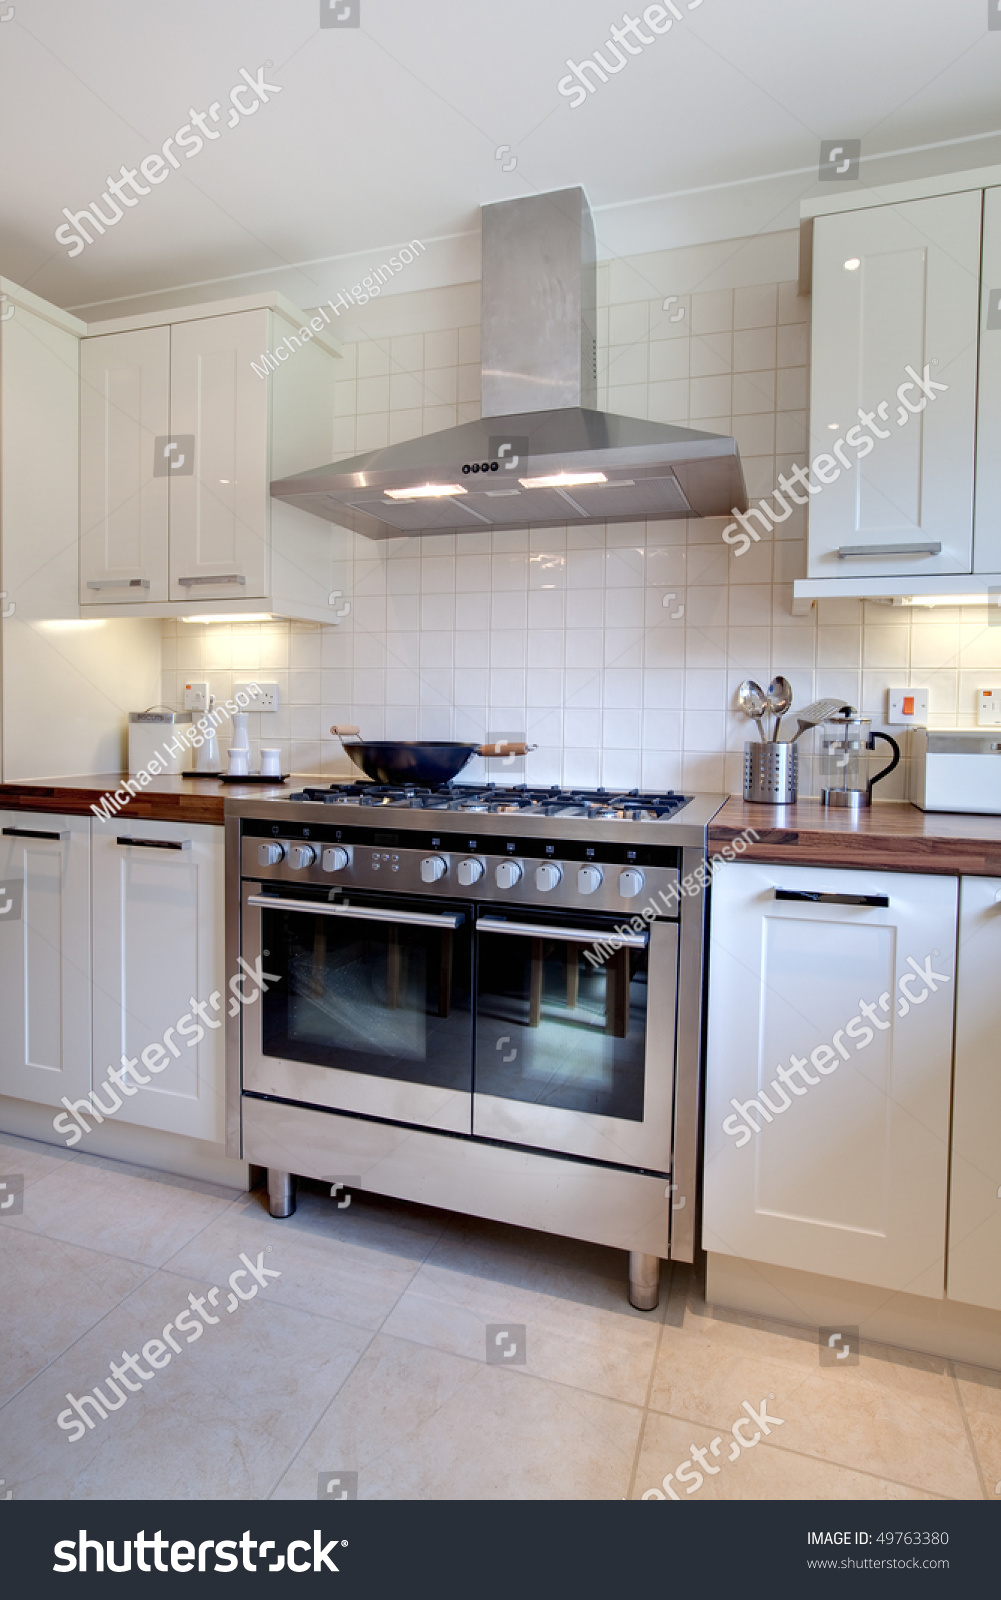 Modern Kitchen Containing Range Style Stainless Stock